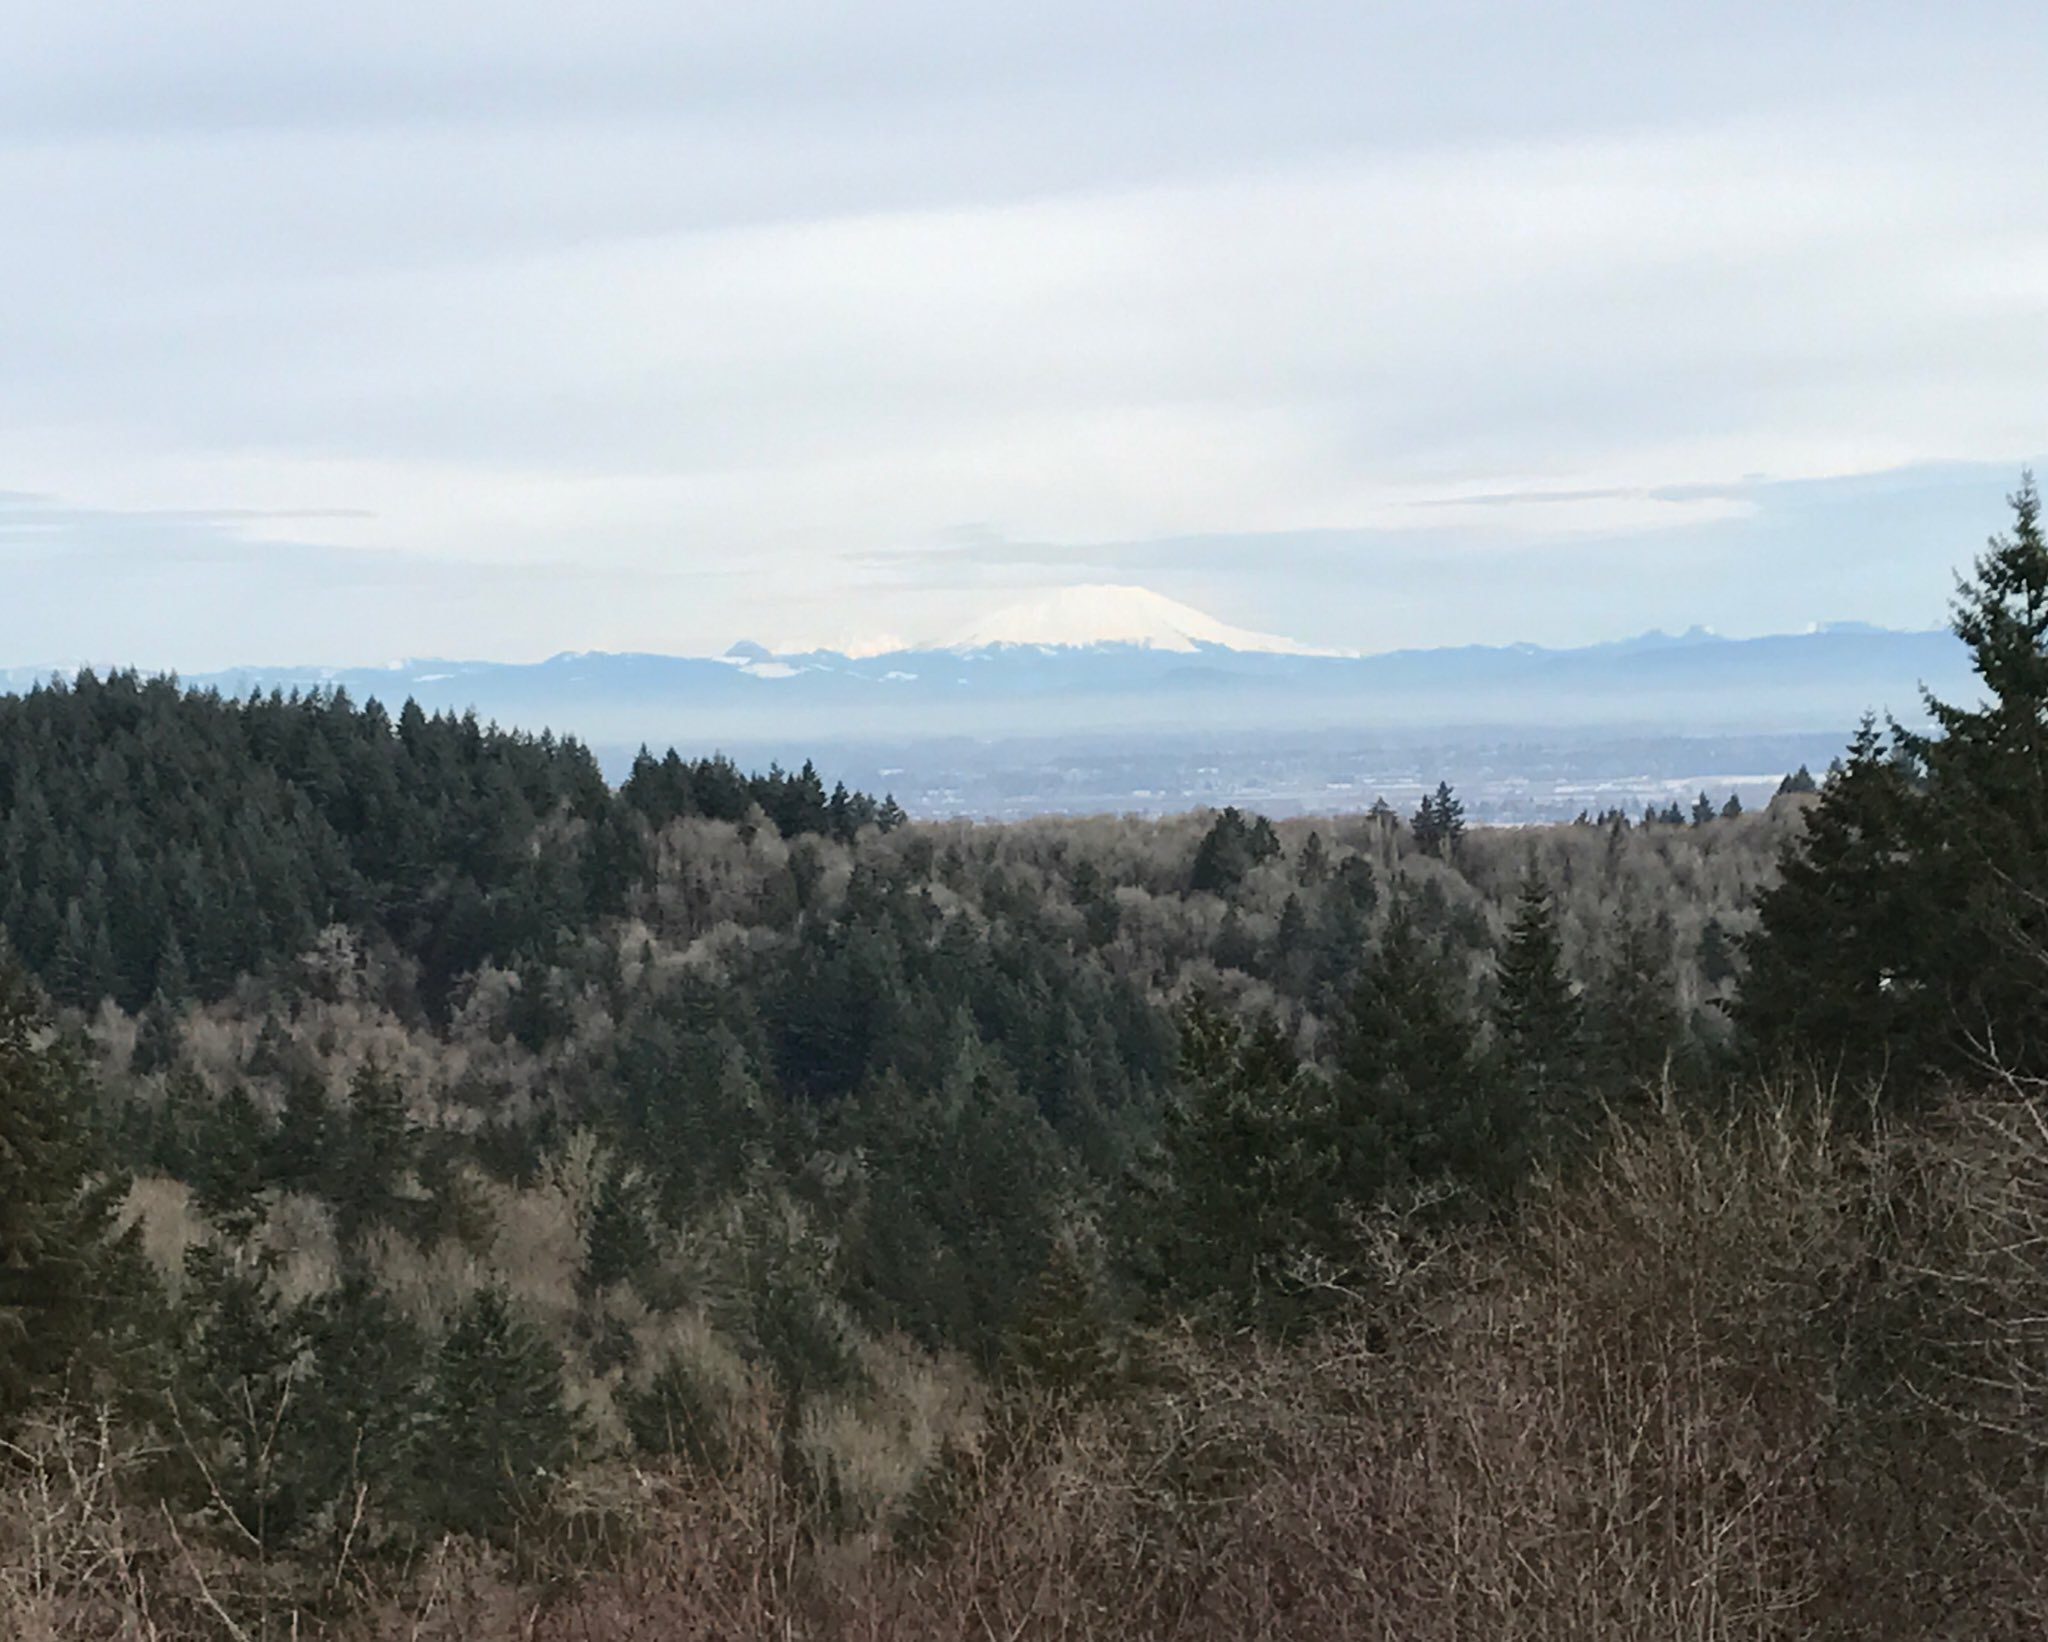 Road run with a view. Mt. St. Helens covered in snow - Skyline Ave, NW Portland